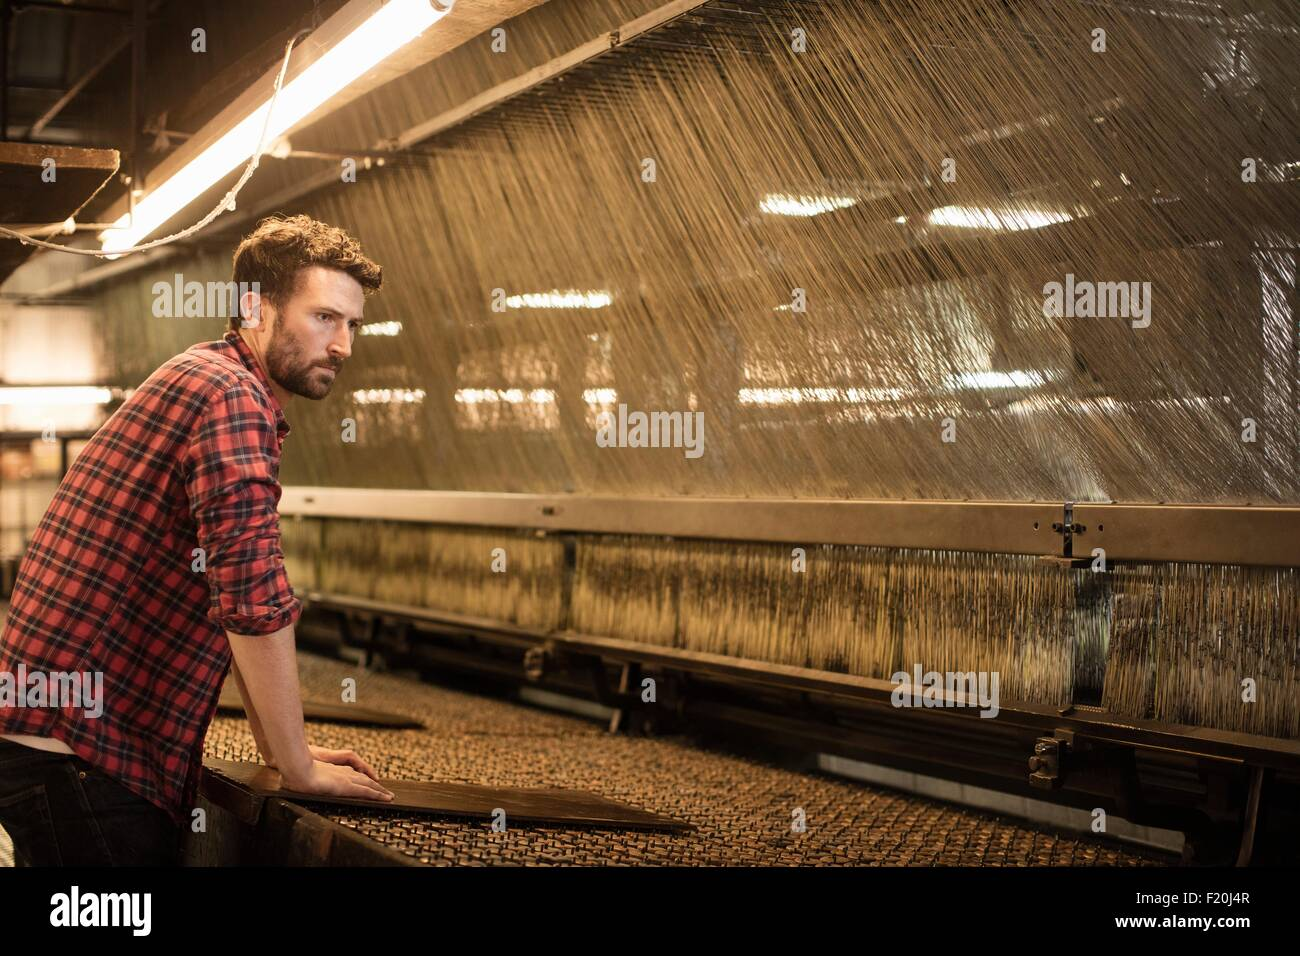 Male lace weaver using old weaving machine in textile mill Stock Photo